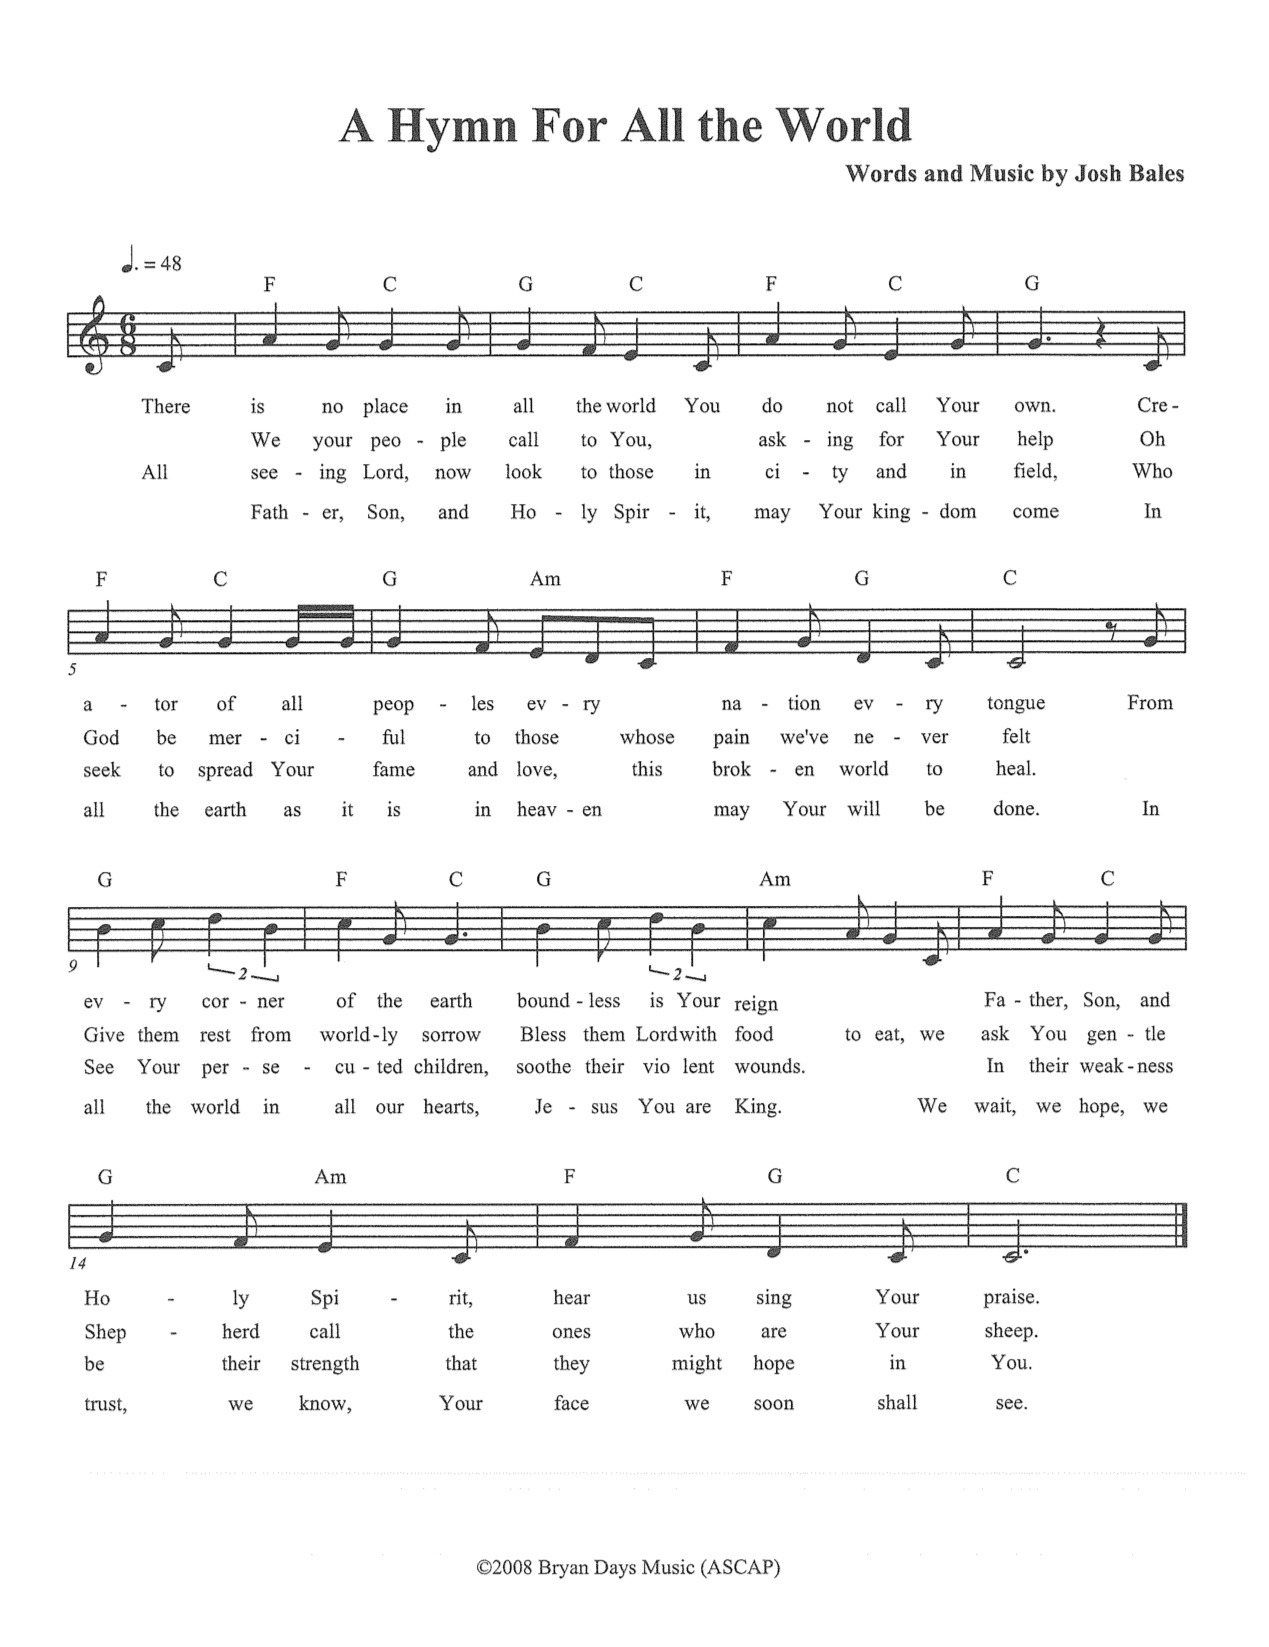 A Hymn For All The World (Lead Sheet) (C)2005 Josh Bales, Bryan Days Music (ASCAP)